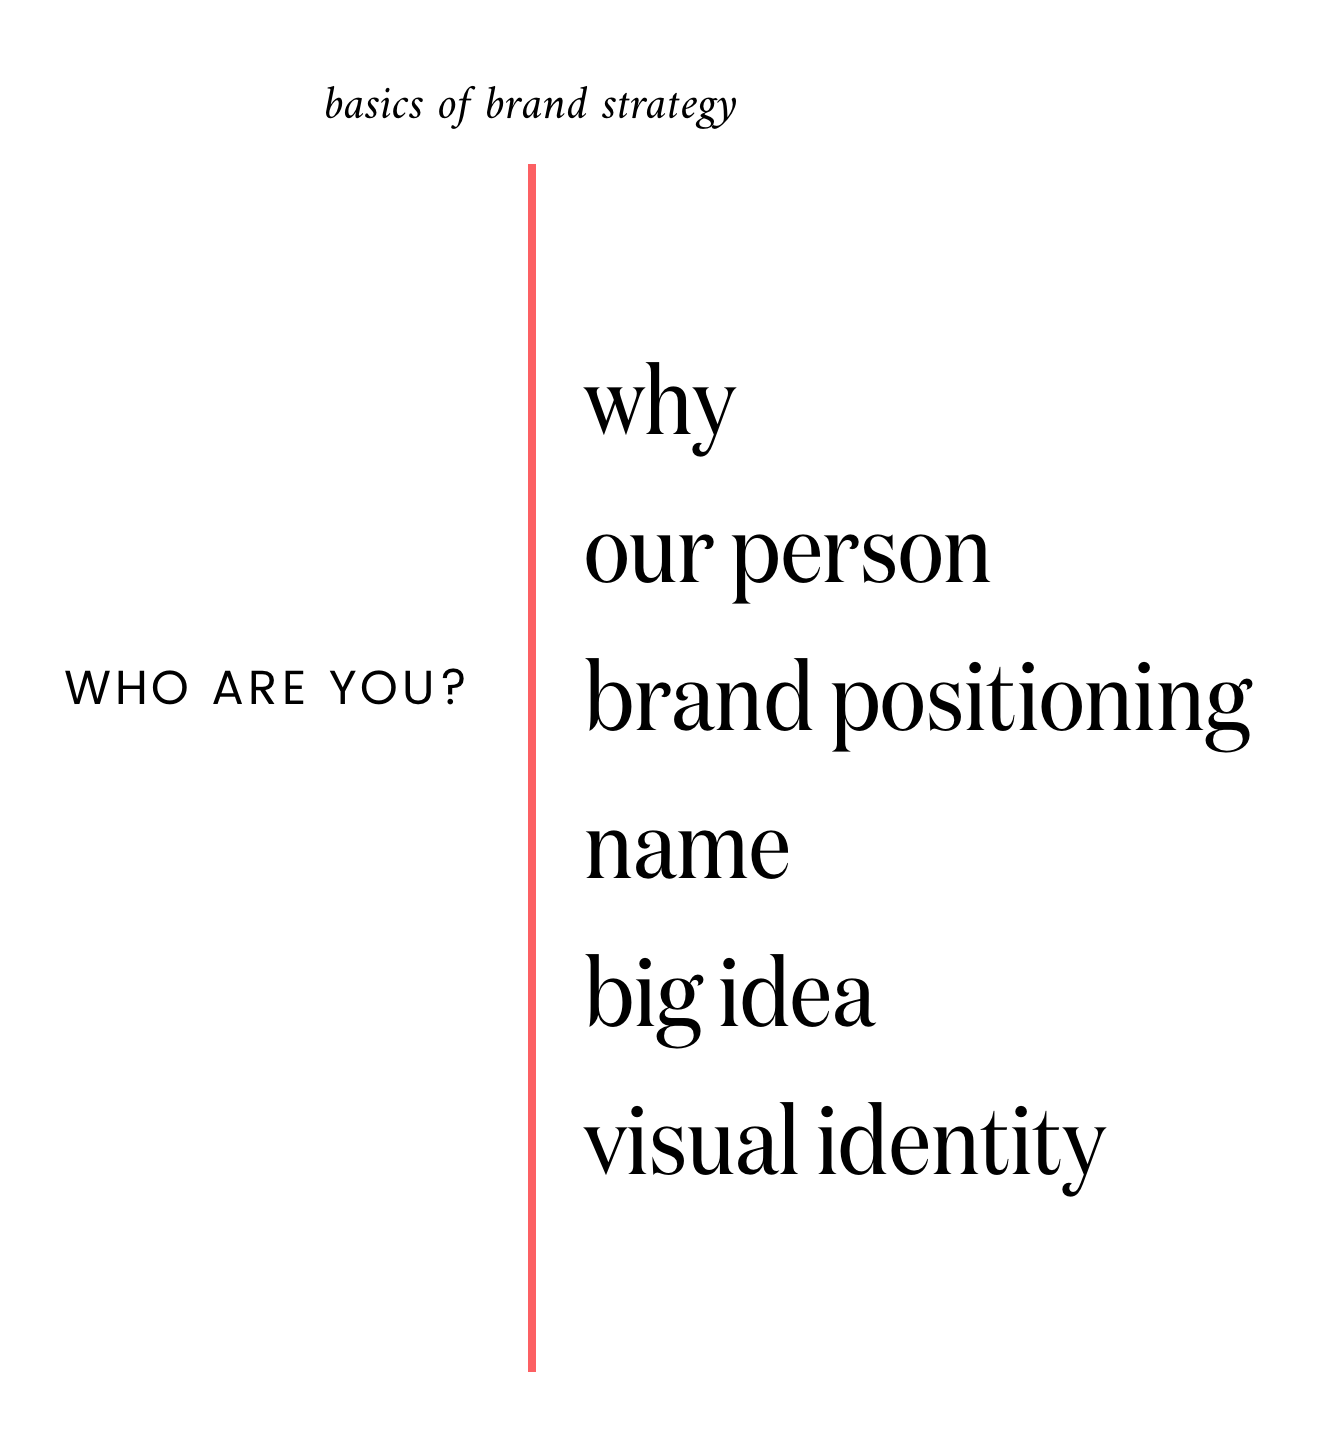 Basics of Brand Strategy